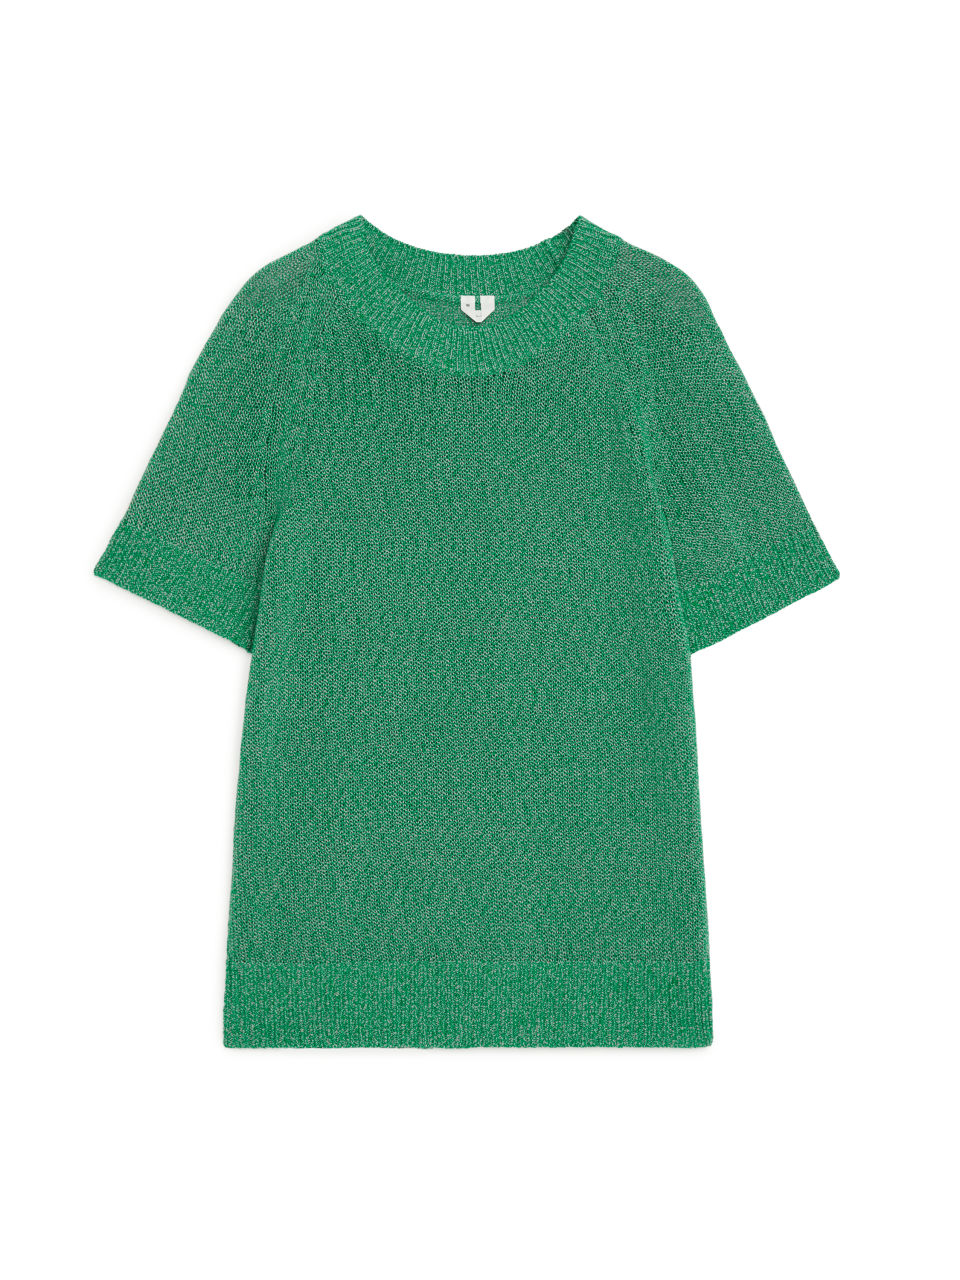 Knitted Short-Sleeved Top - Green